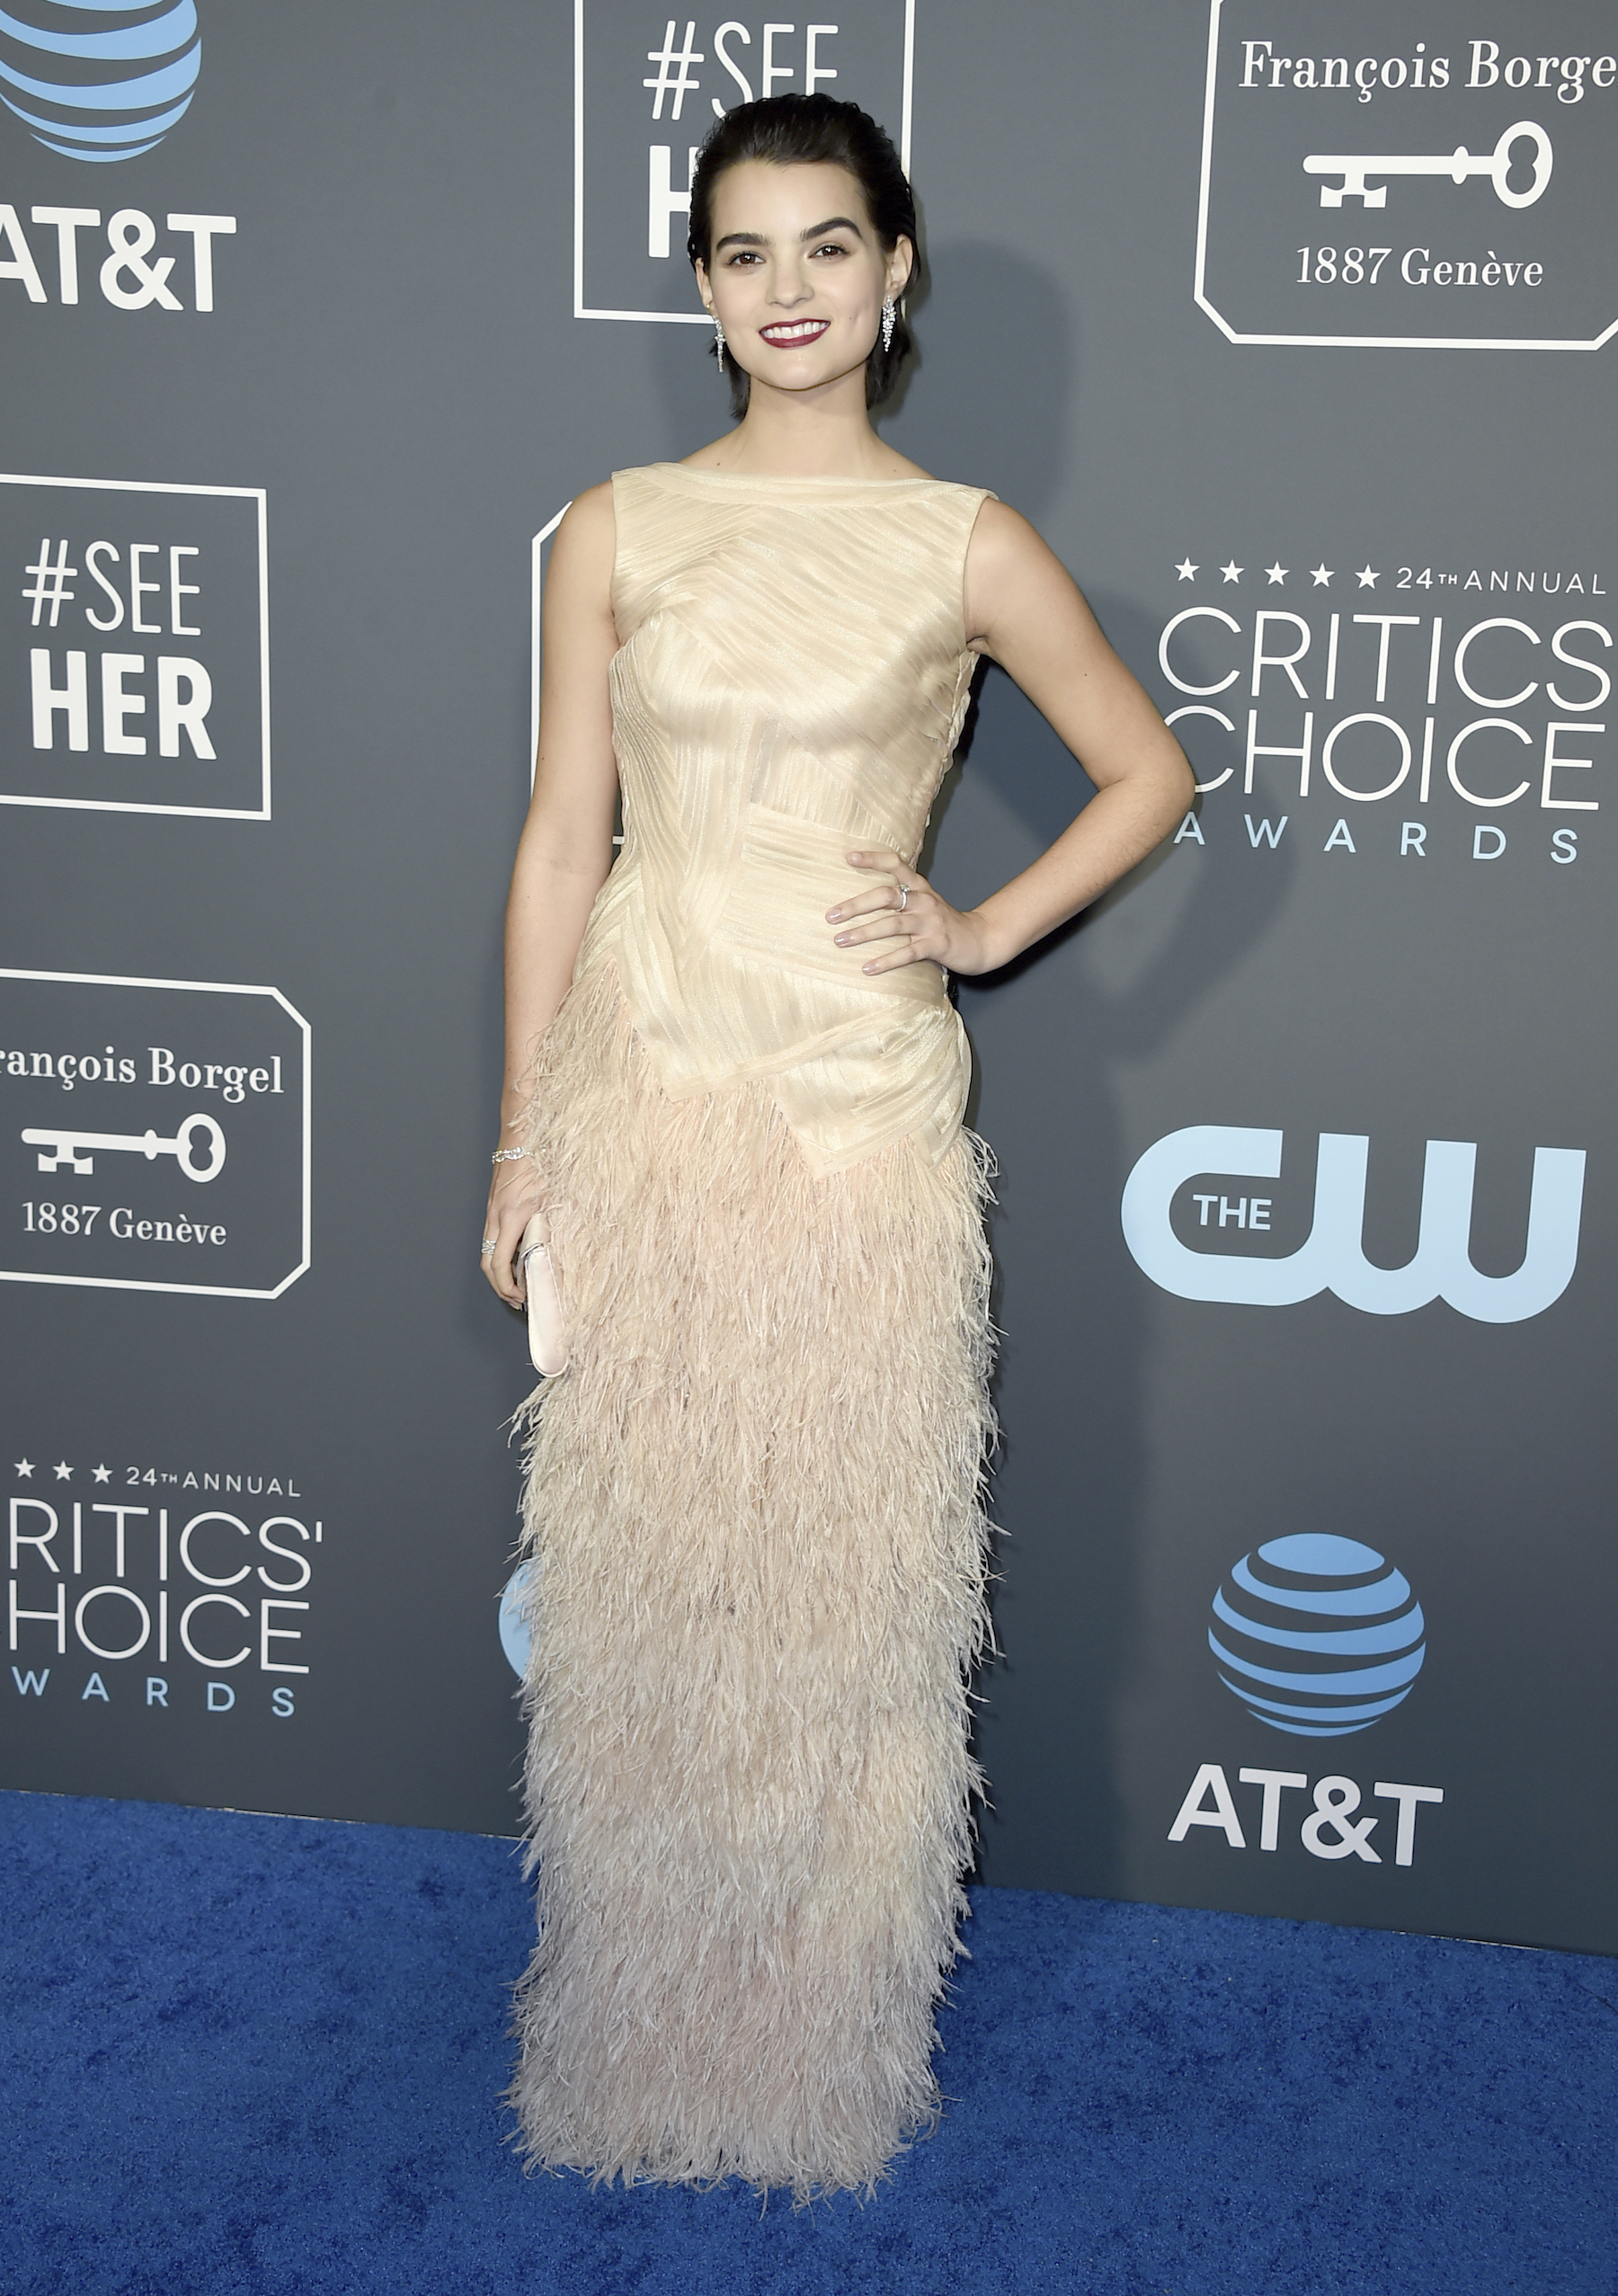 "<div class=""meta image-caption""><div class=""origin-logo origin-image ap""><span>AP</span></div><span class=""caption-text"">Brianna Hildebrand arrives at the 24th annual Critics' Choice Awards on Sunday, Jan. 13, 2019, at the Barker Hangar in Santa Monica, Calif. (Jordan Strauss/Invision/AP)</span></div>"